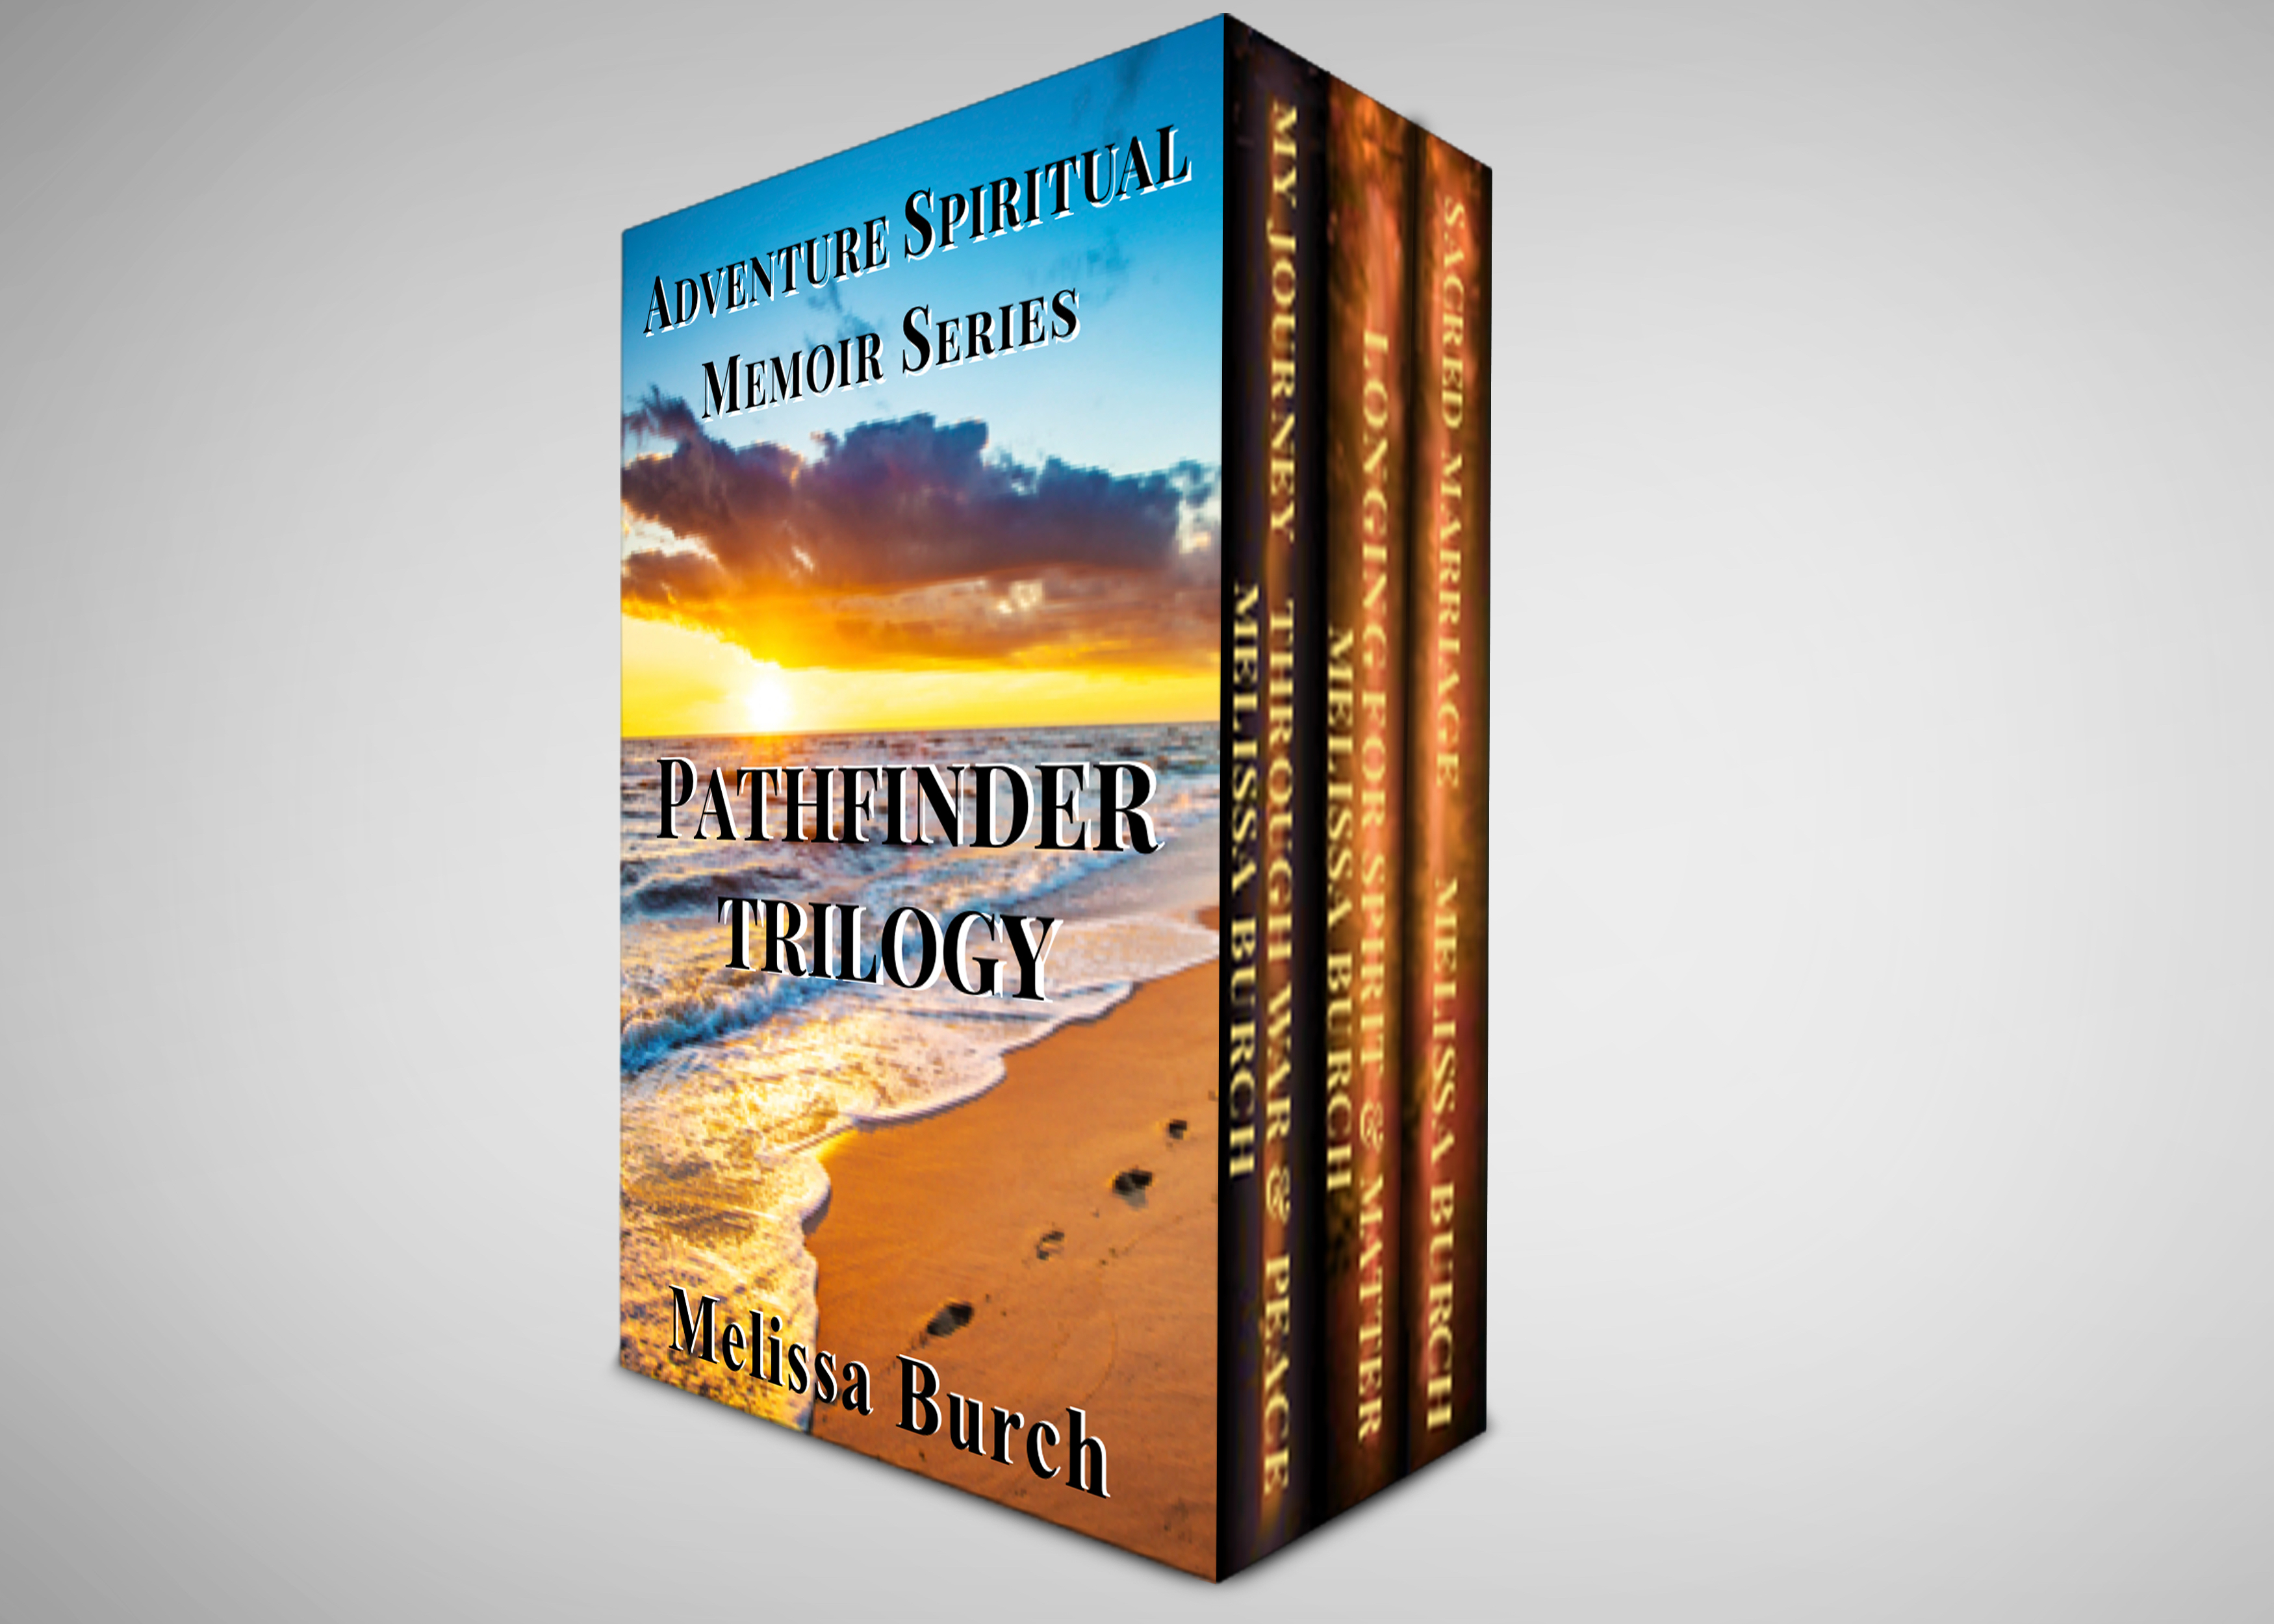 Pathfinder Trilogy: Adventurous Spiritual Memoir Series